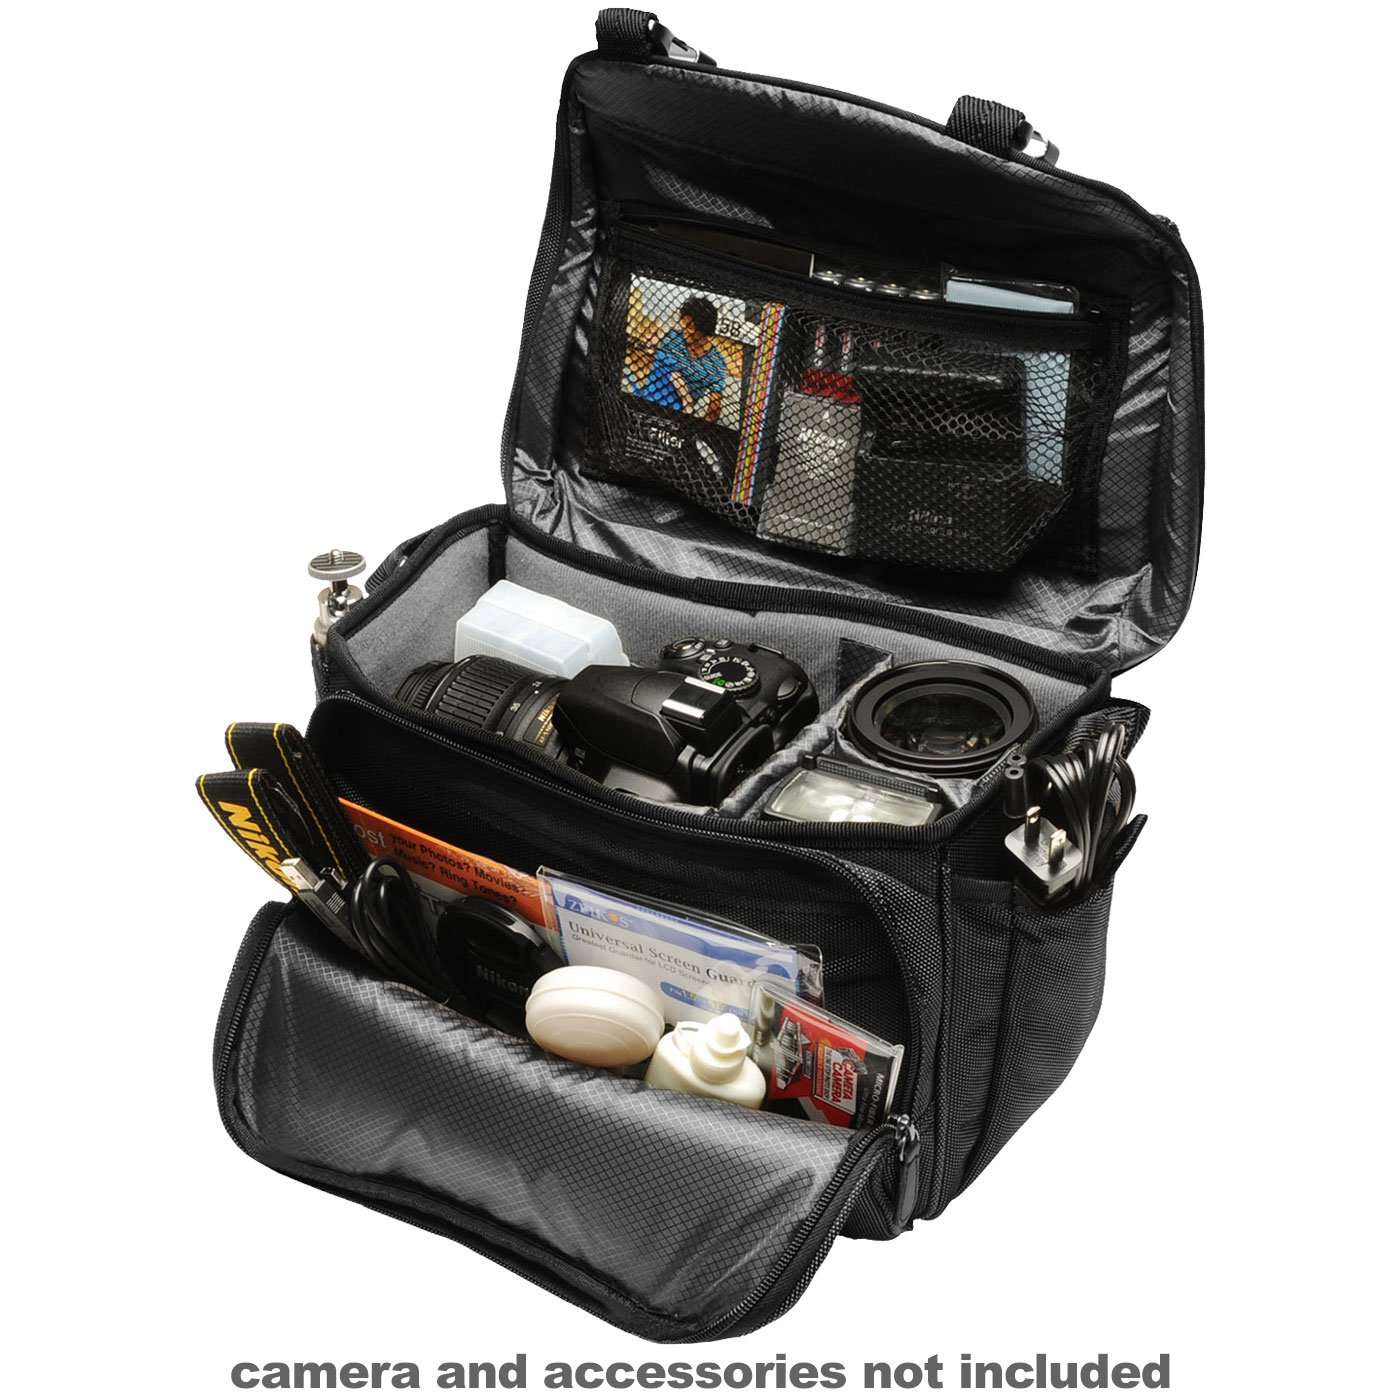 Camera Nikon Camera Bags amazon com nikon deluxe digital slr camera case gadget bag cleaning kit for d7000 d5100 d5000 d3200 d3100 d800 d90 d60 d